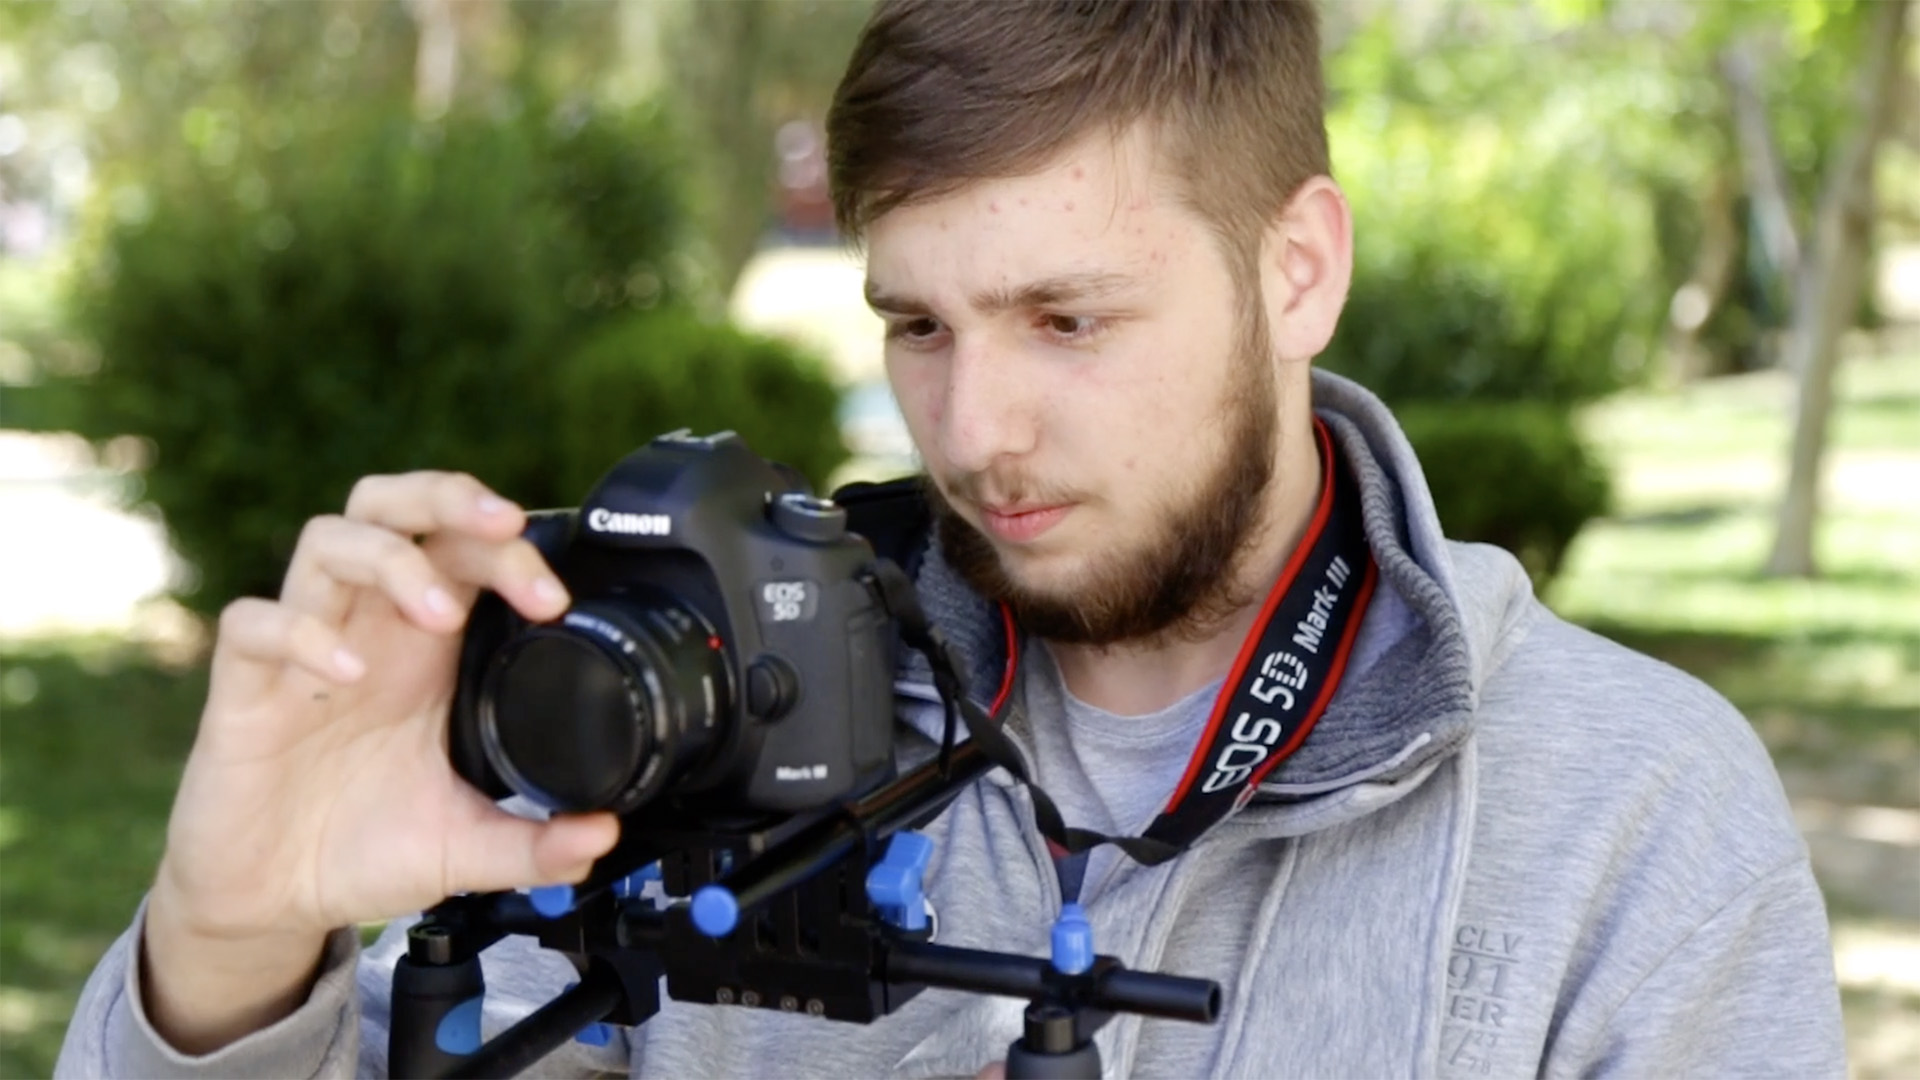 A young person uses a camera with a shoulder mount